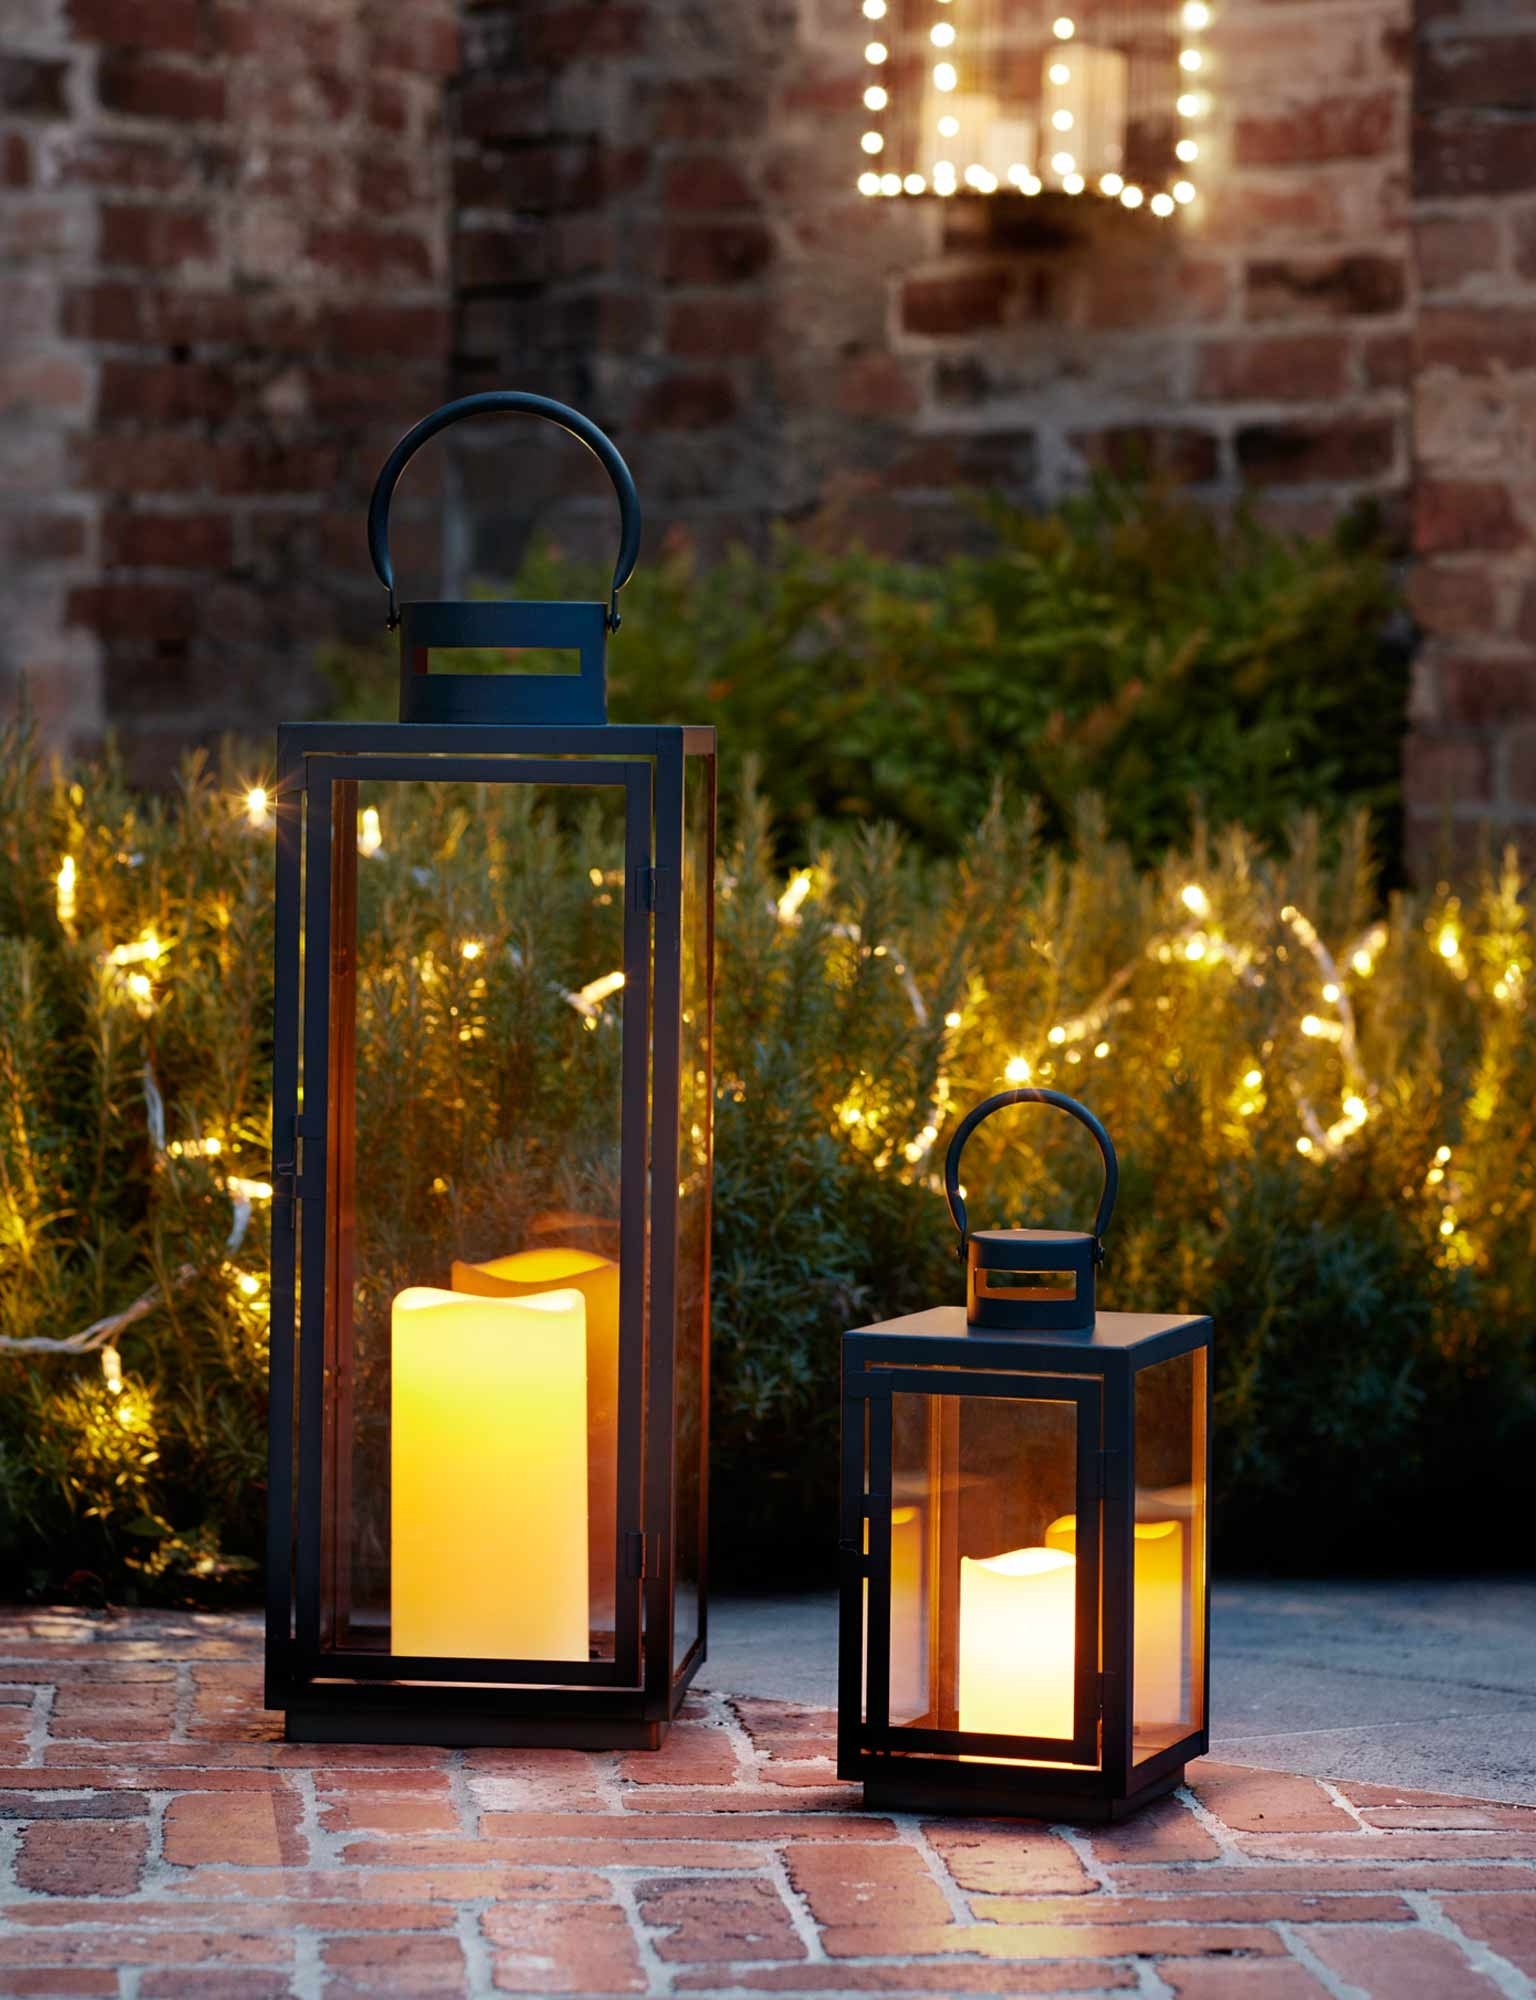 Indoor Outdoor Lanterns Lamp Post Solar Candles Door Ideas Lighting For Most Recent White Outdoor Lanterns (View 6 of 20)